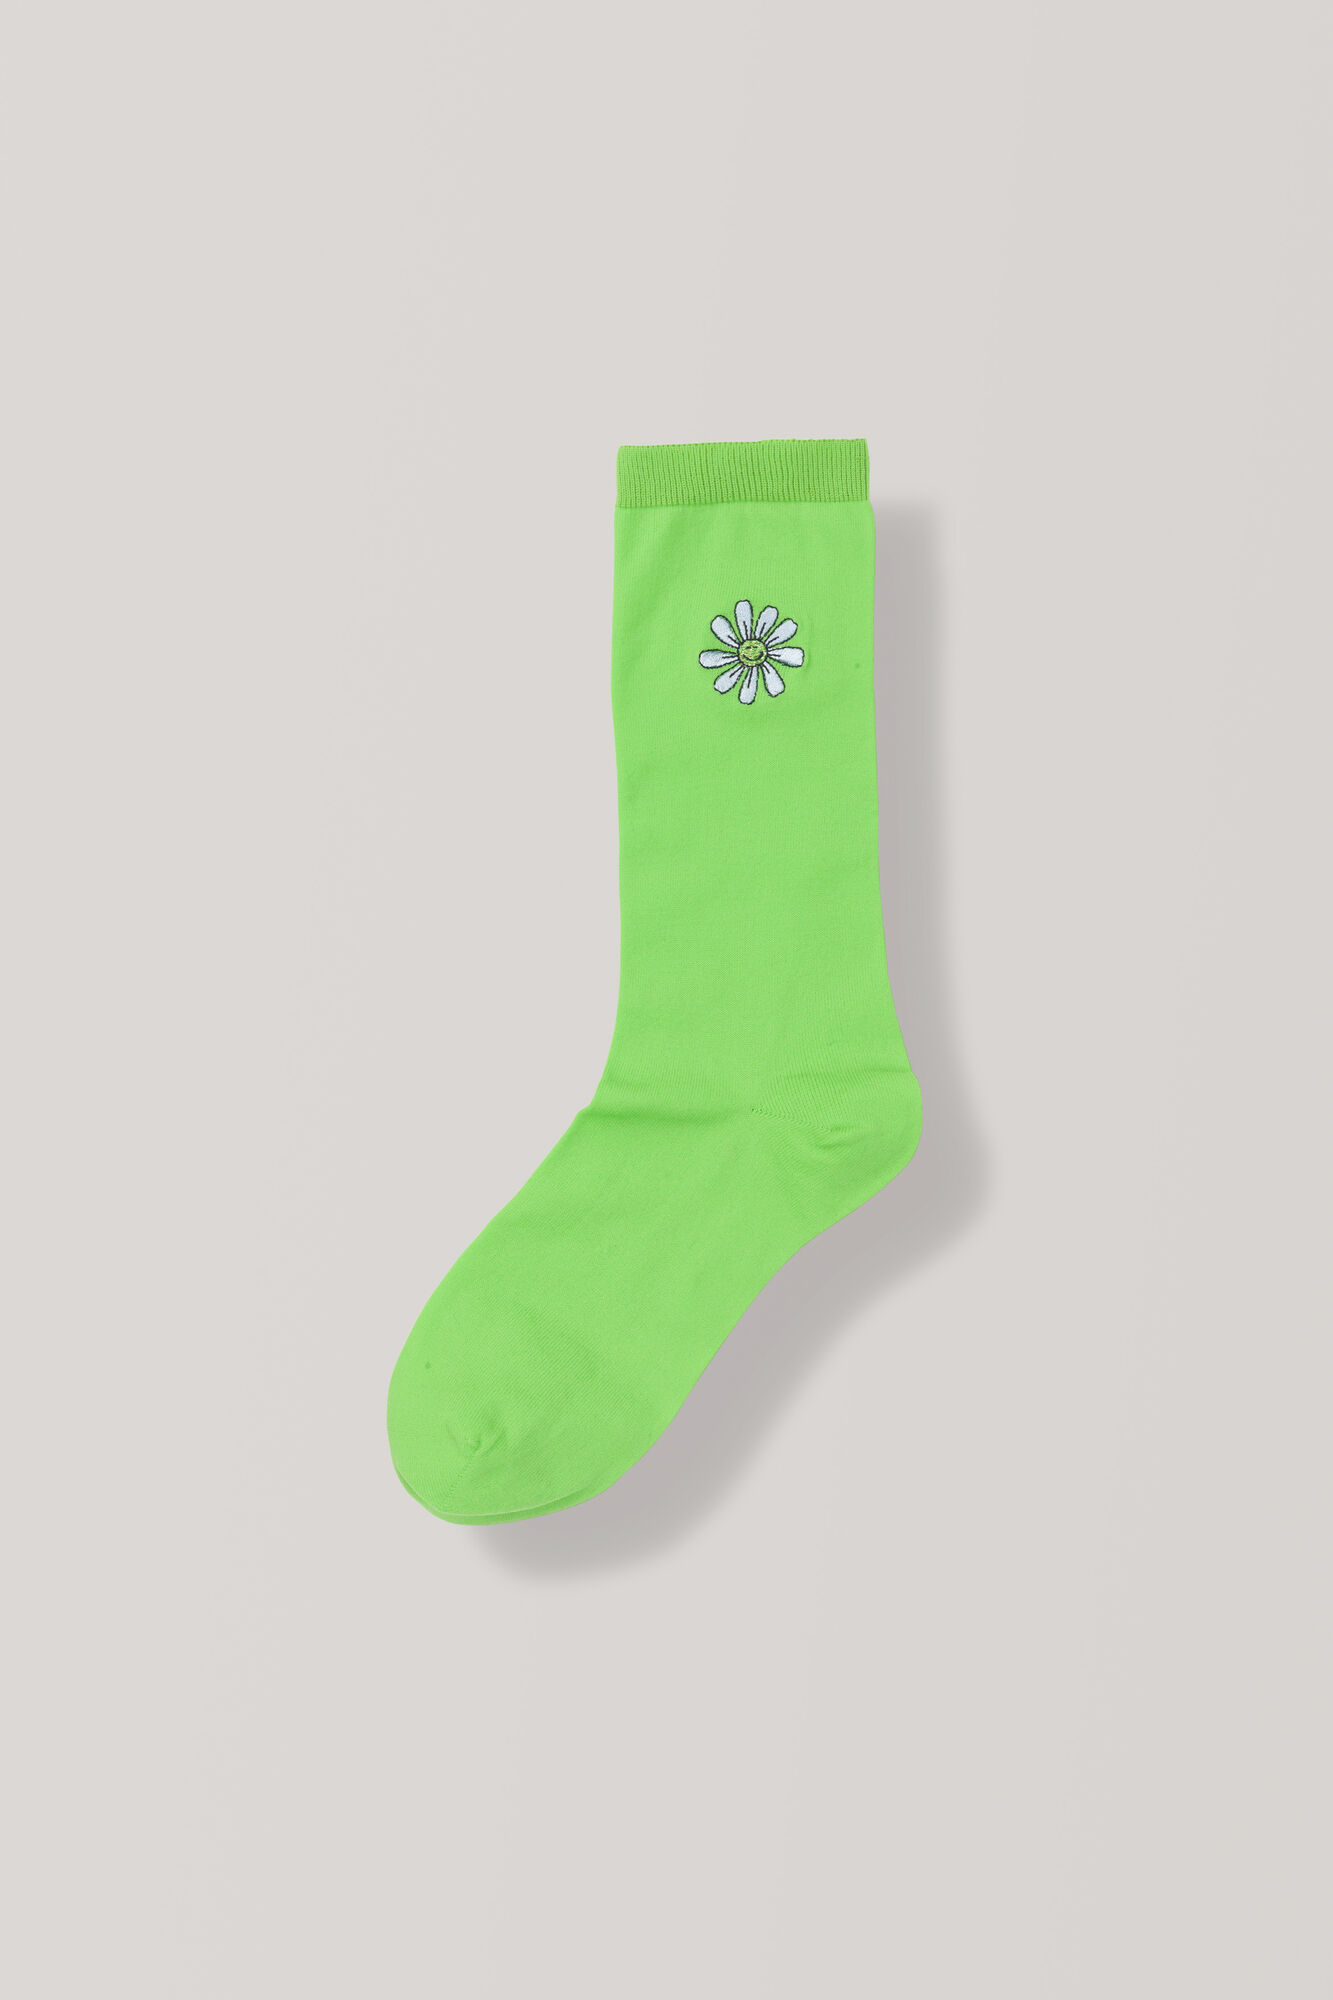 Classon Embroidery Ankle Socks, Daisy, Classic Green, hi-res